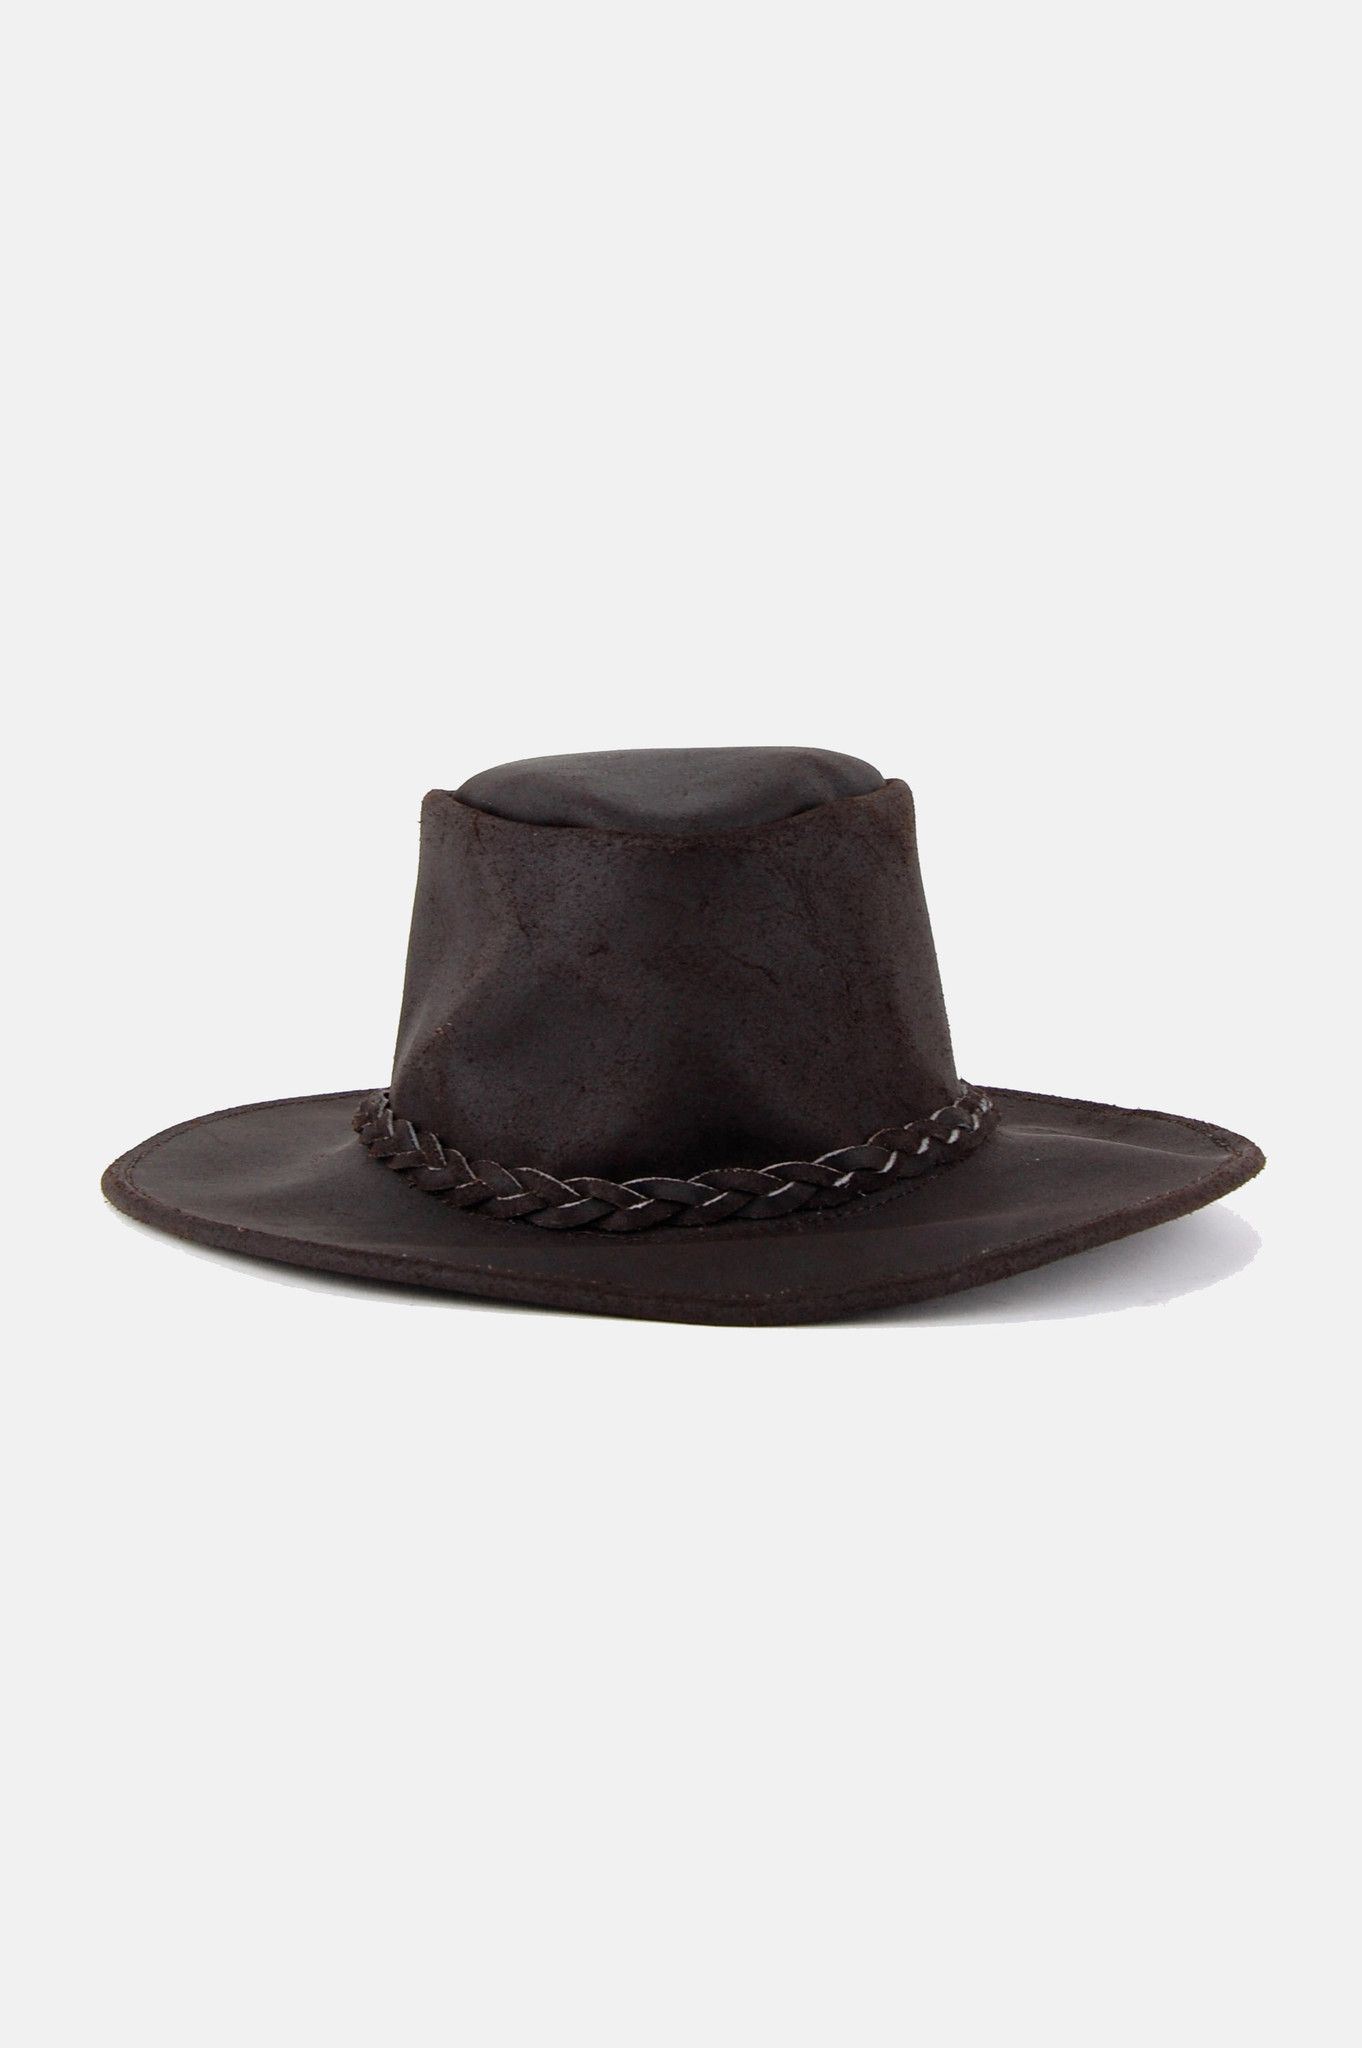 Easy Rider Leather Rancher Hat - Brown  16ea08861fd